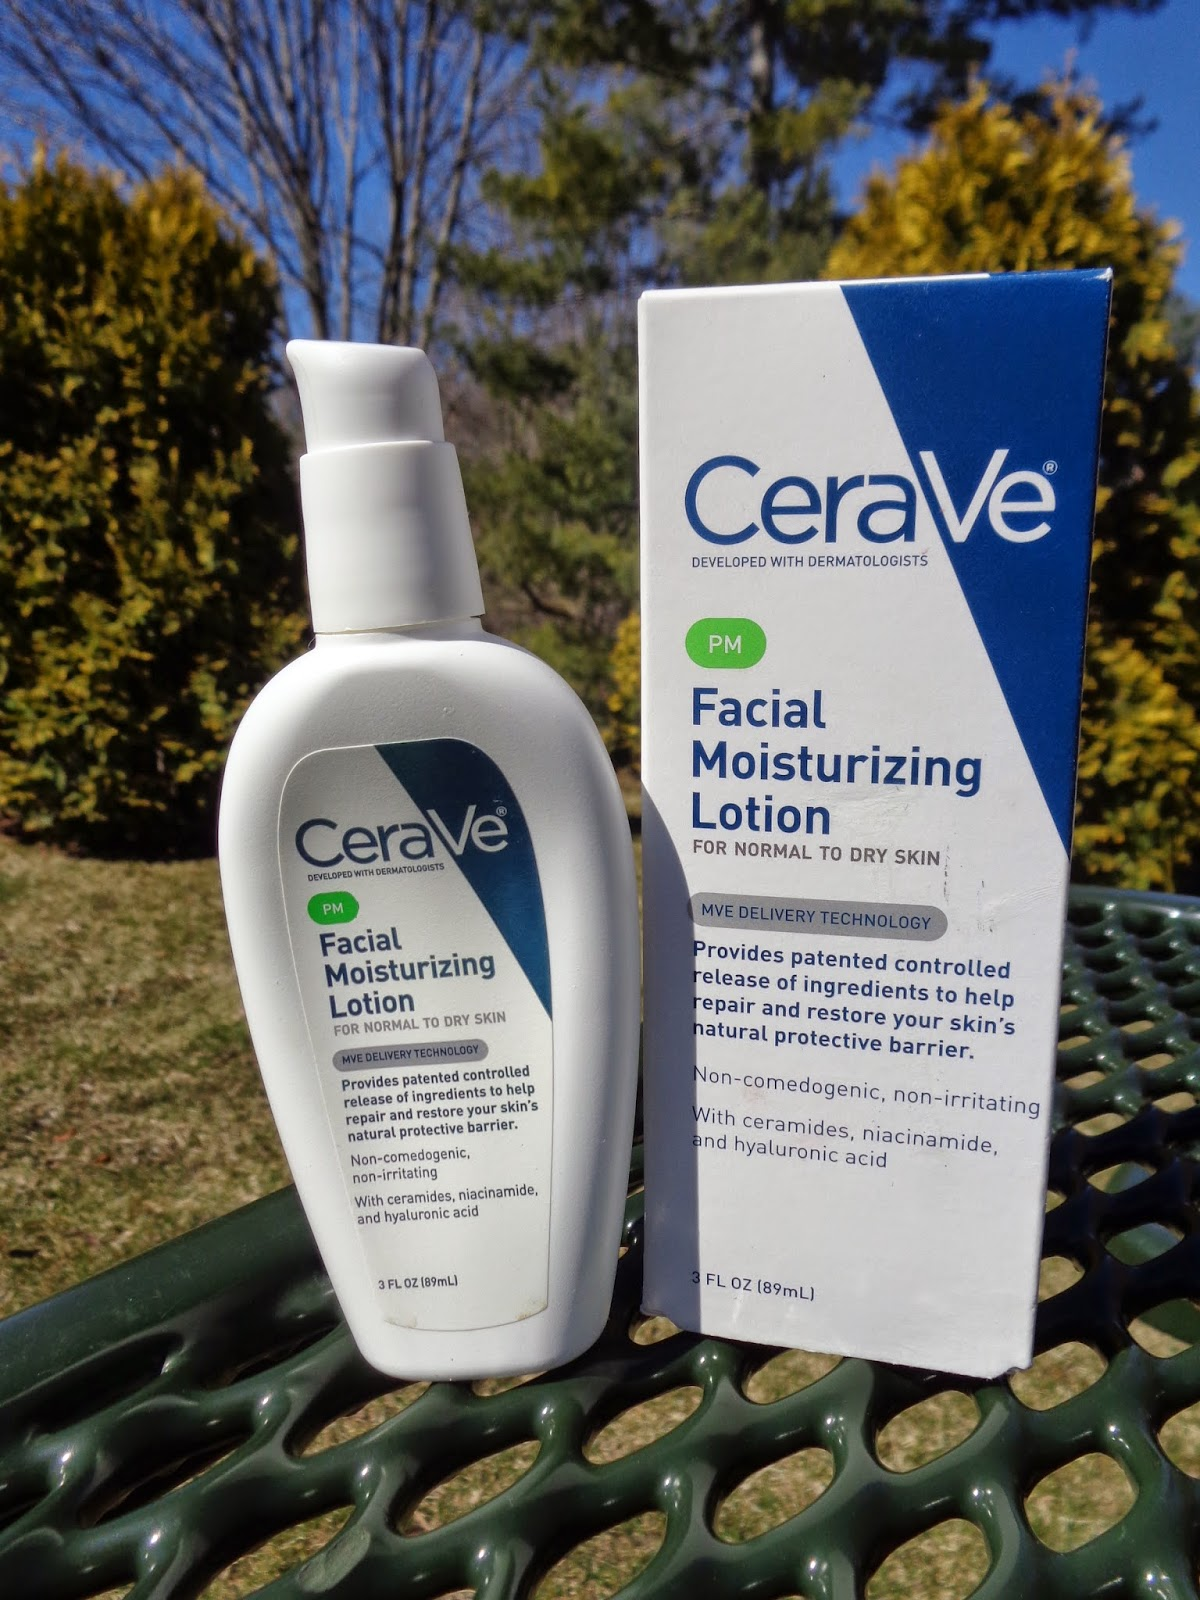 CeraVe moisturizing Facial Lotion PM | Best Facial Moisturizers To Bring Out Your Inner Beauty